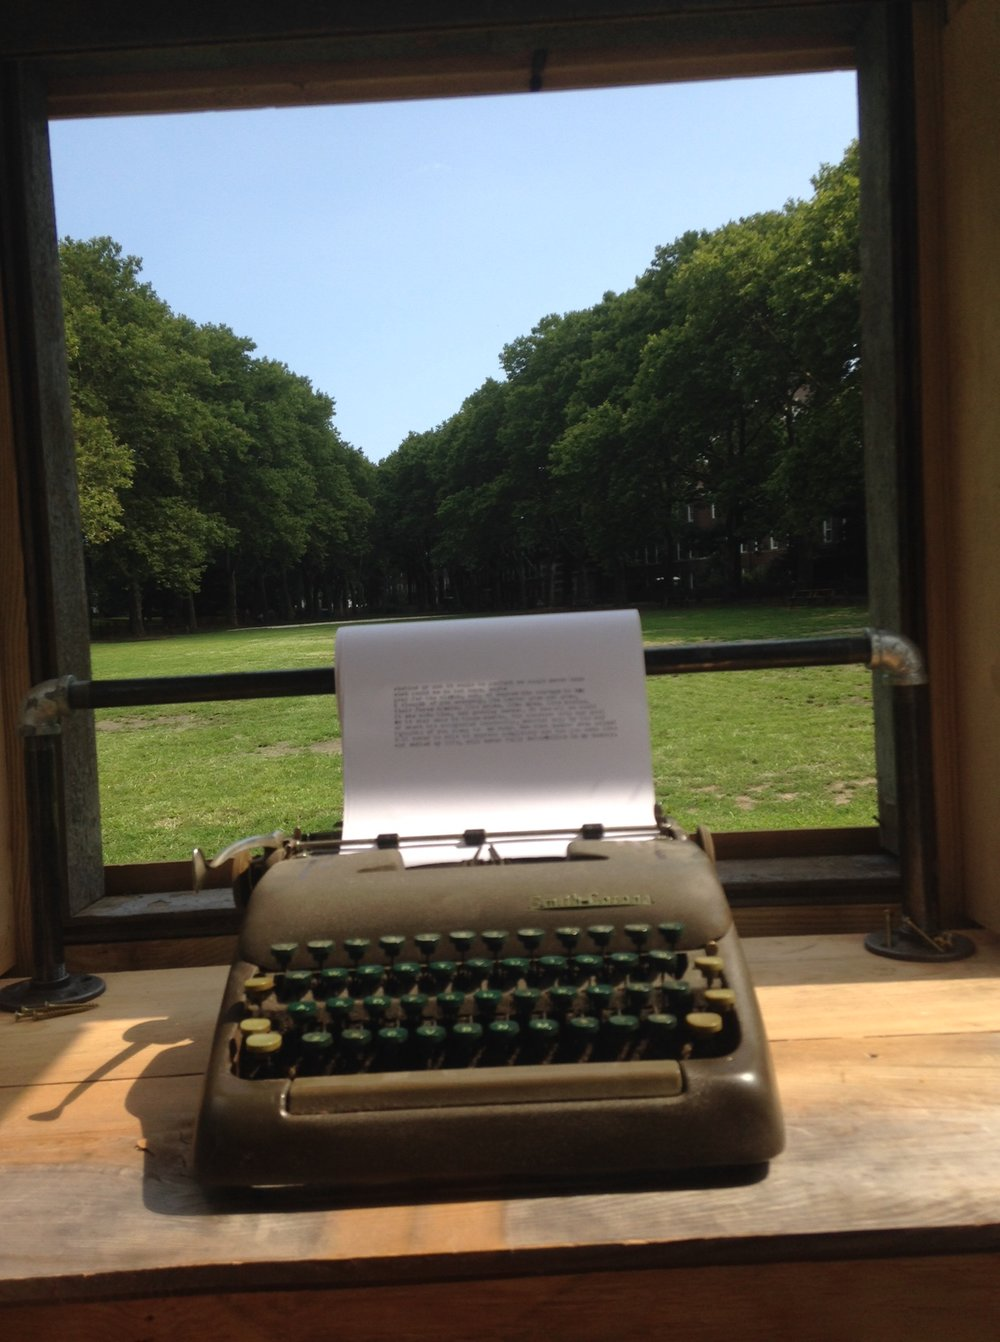 typewriter-photo-4.jpg